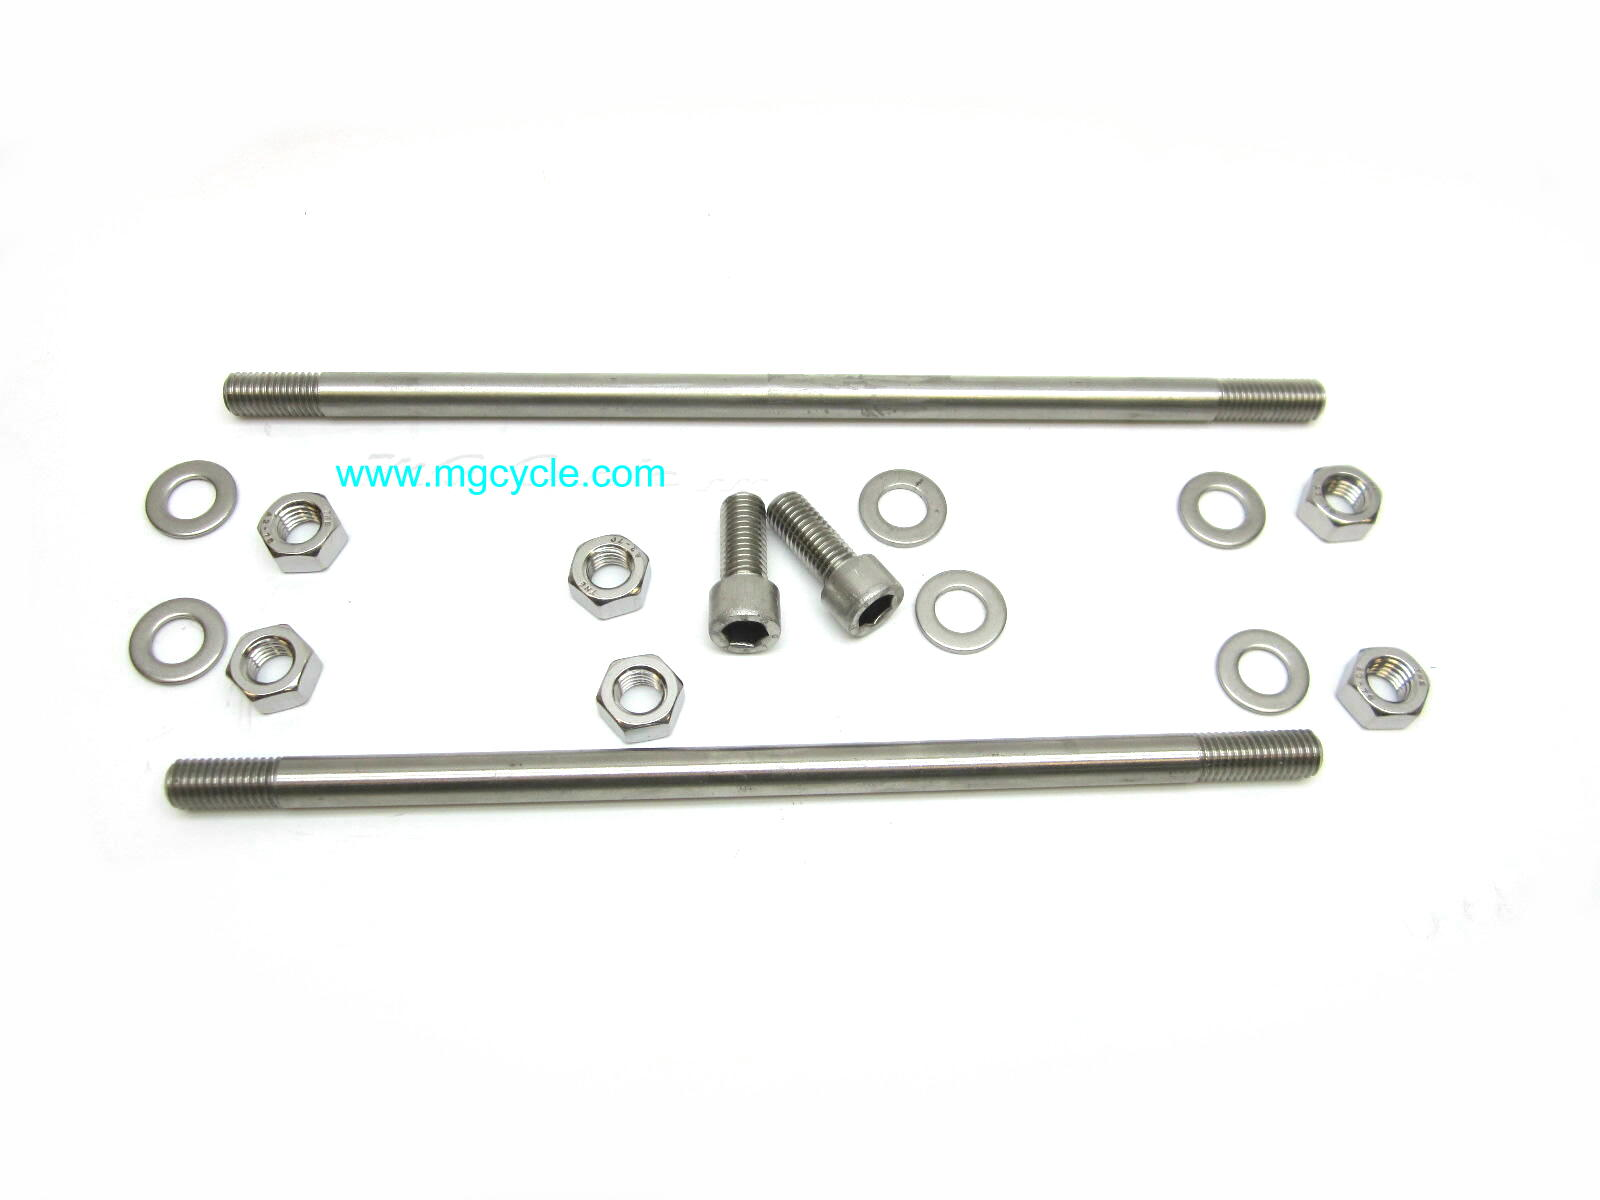 Stainless steel engine mounting kit